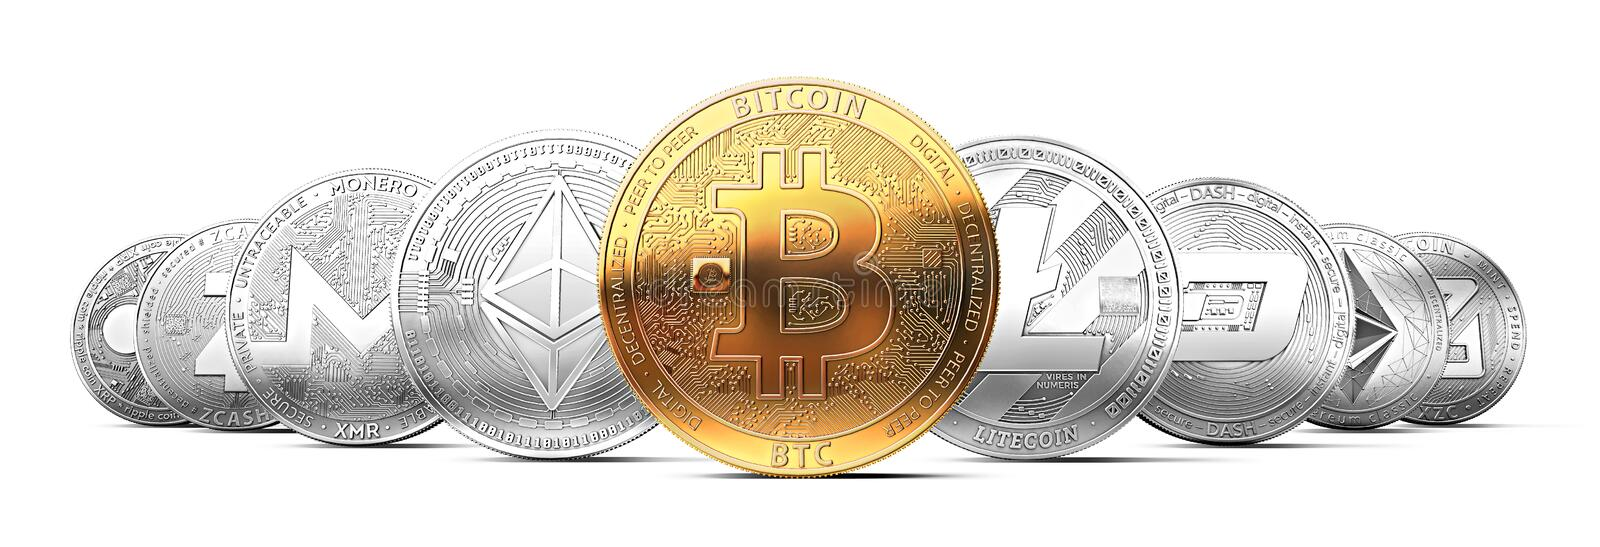 Set of cryptocurrencies with a golden bitcoin on the front as the most valuable. Set of cryptocurrencies with a golden bitcoin on the front as the leader royalty free illustration